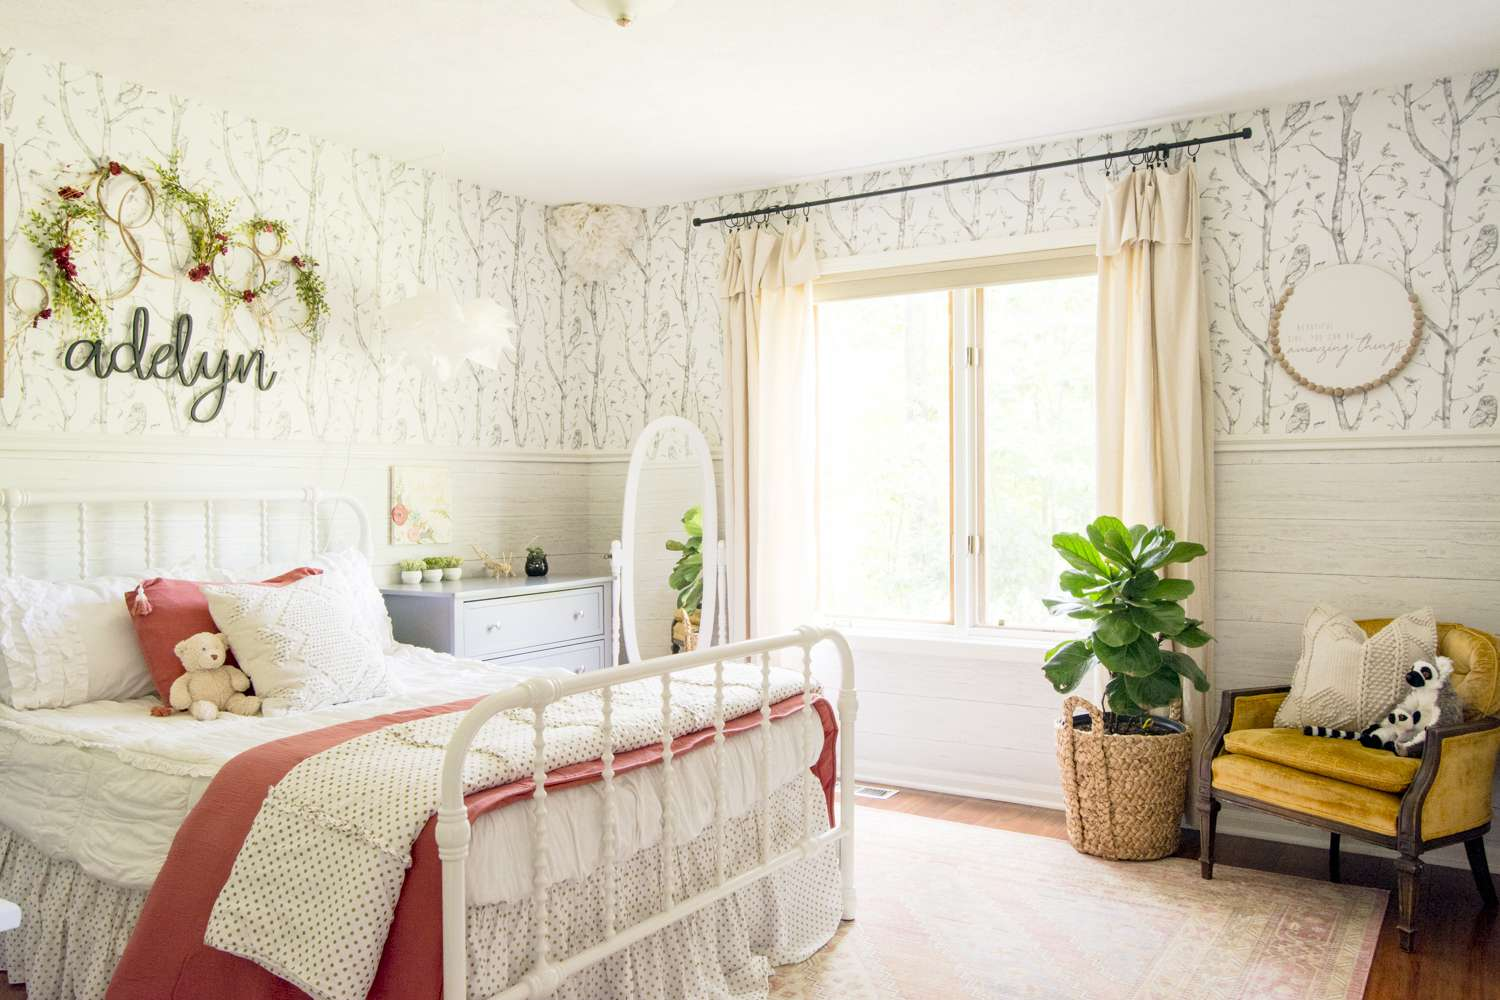 Bedding and Beds for Girls to Suit Their Personal Style ...